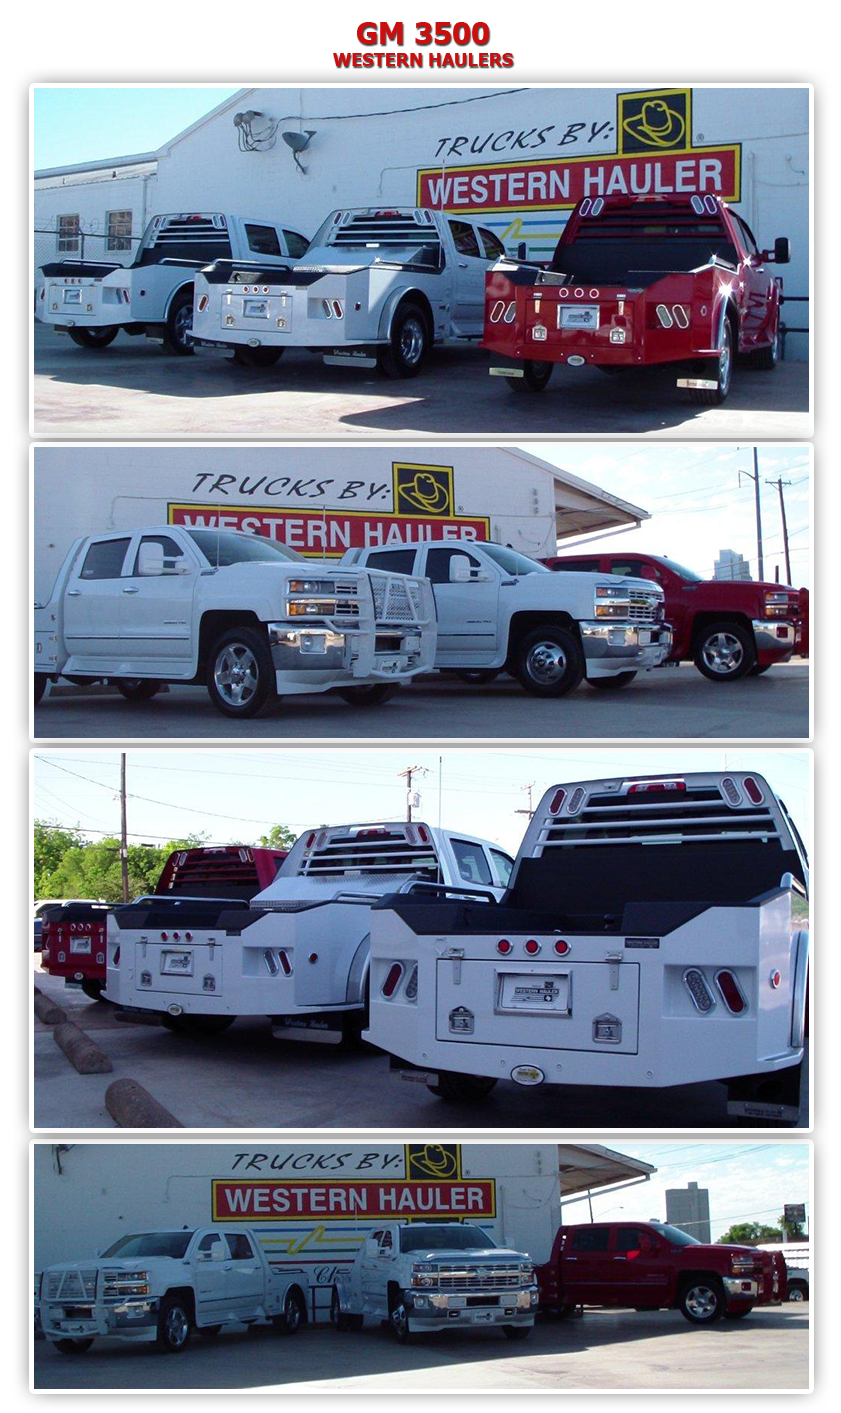 Ford Fort Worth >> WESTERN HAULER - GM TRUCKS